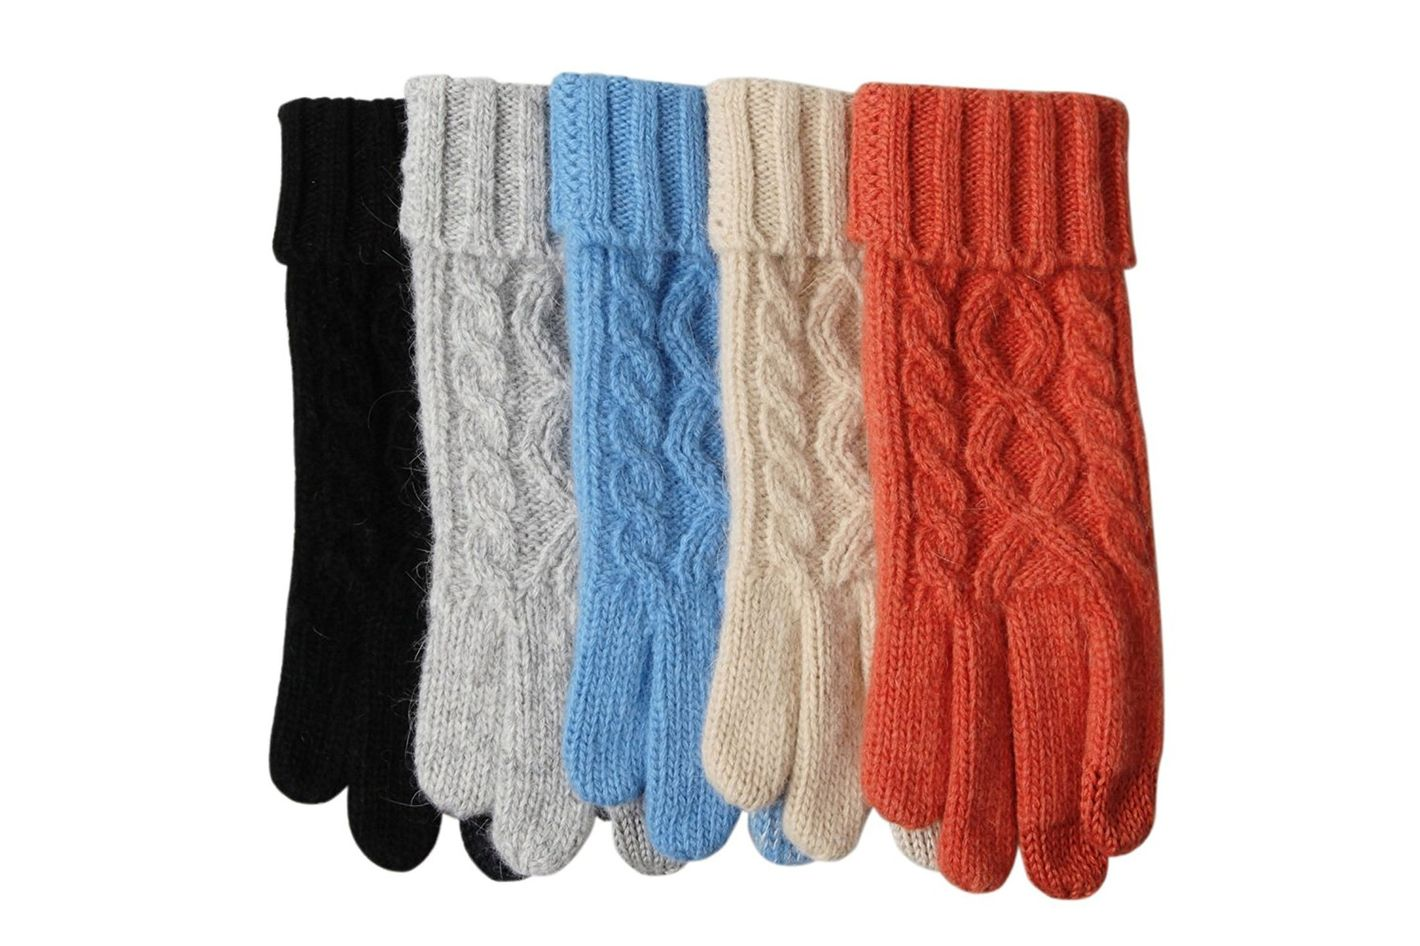 Women's Texting Touchscreen Winter Cold Weather Super Warm Cozy Wool Knit Thick Fleece Lined Gloves